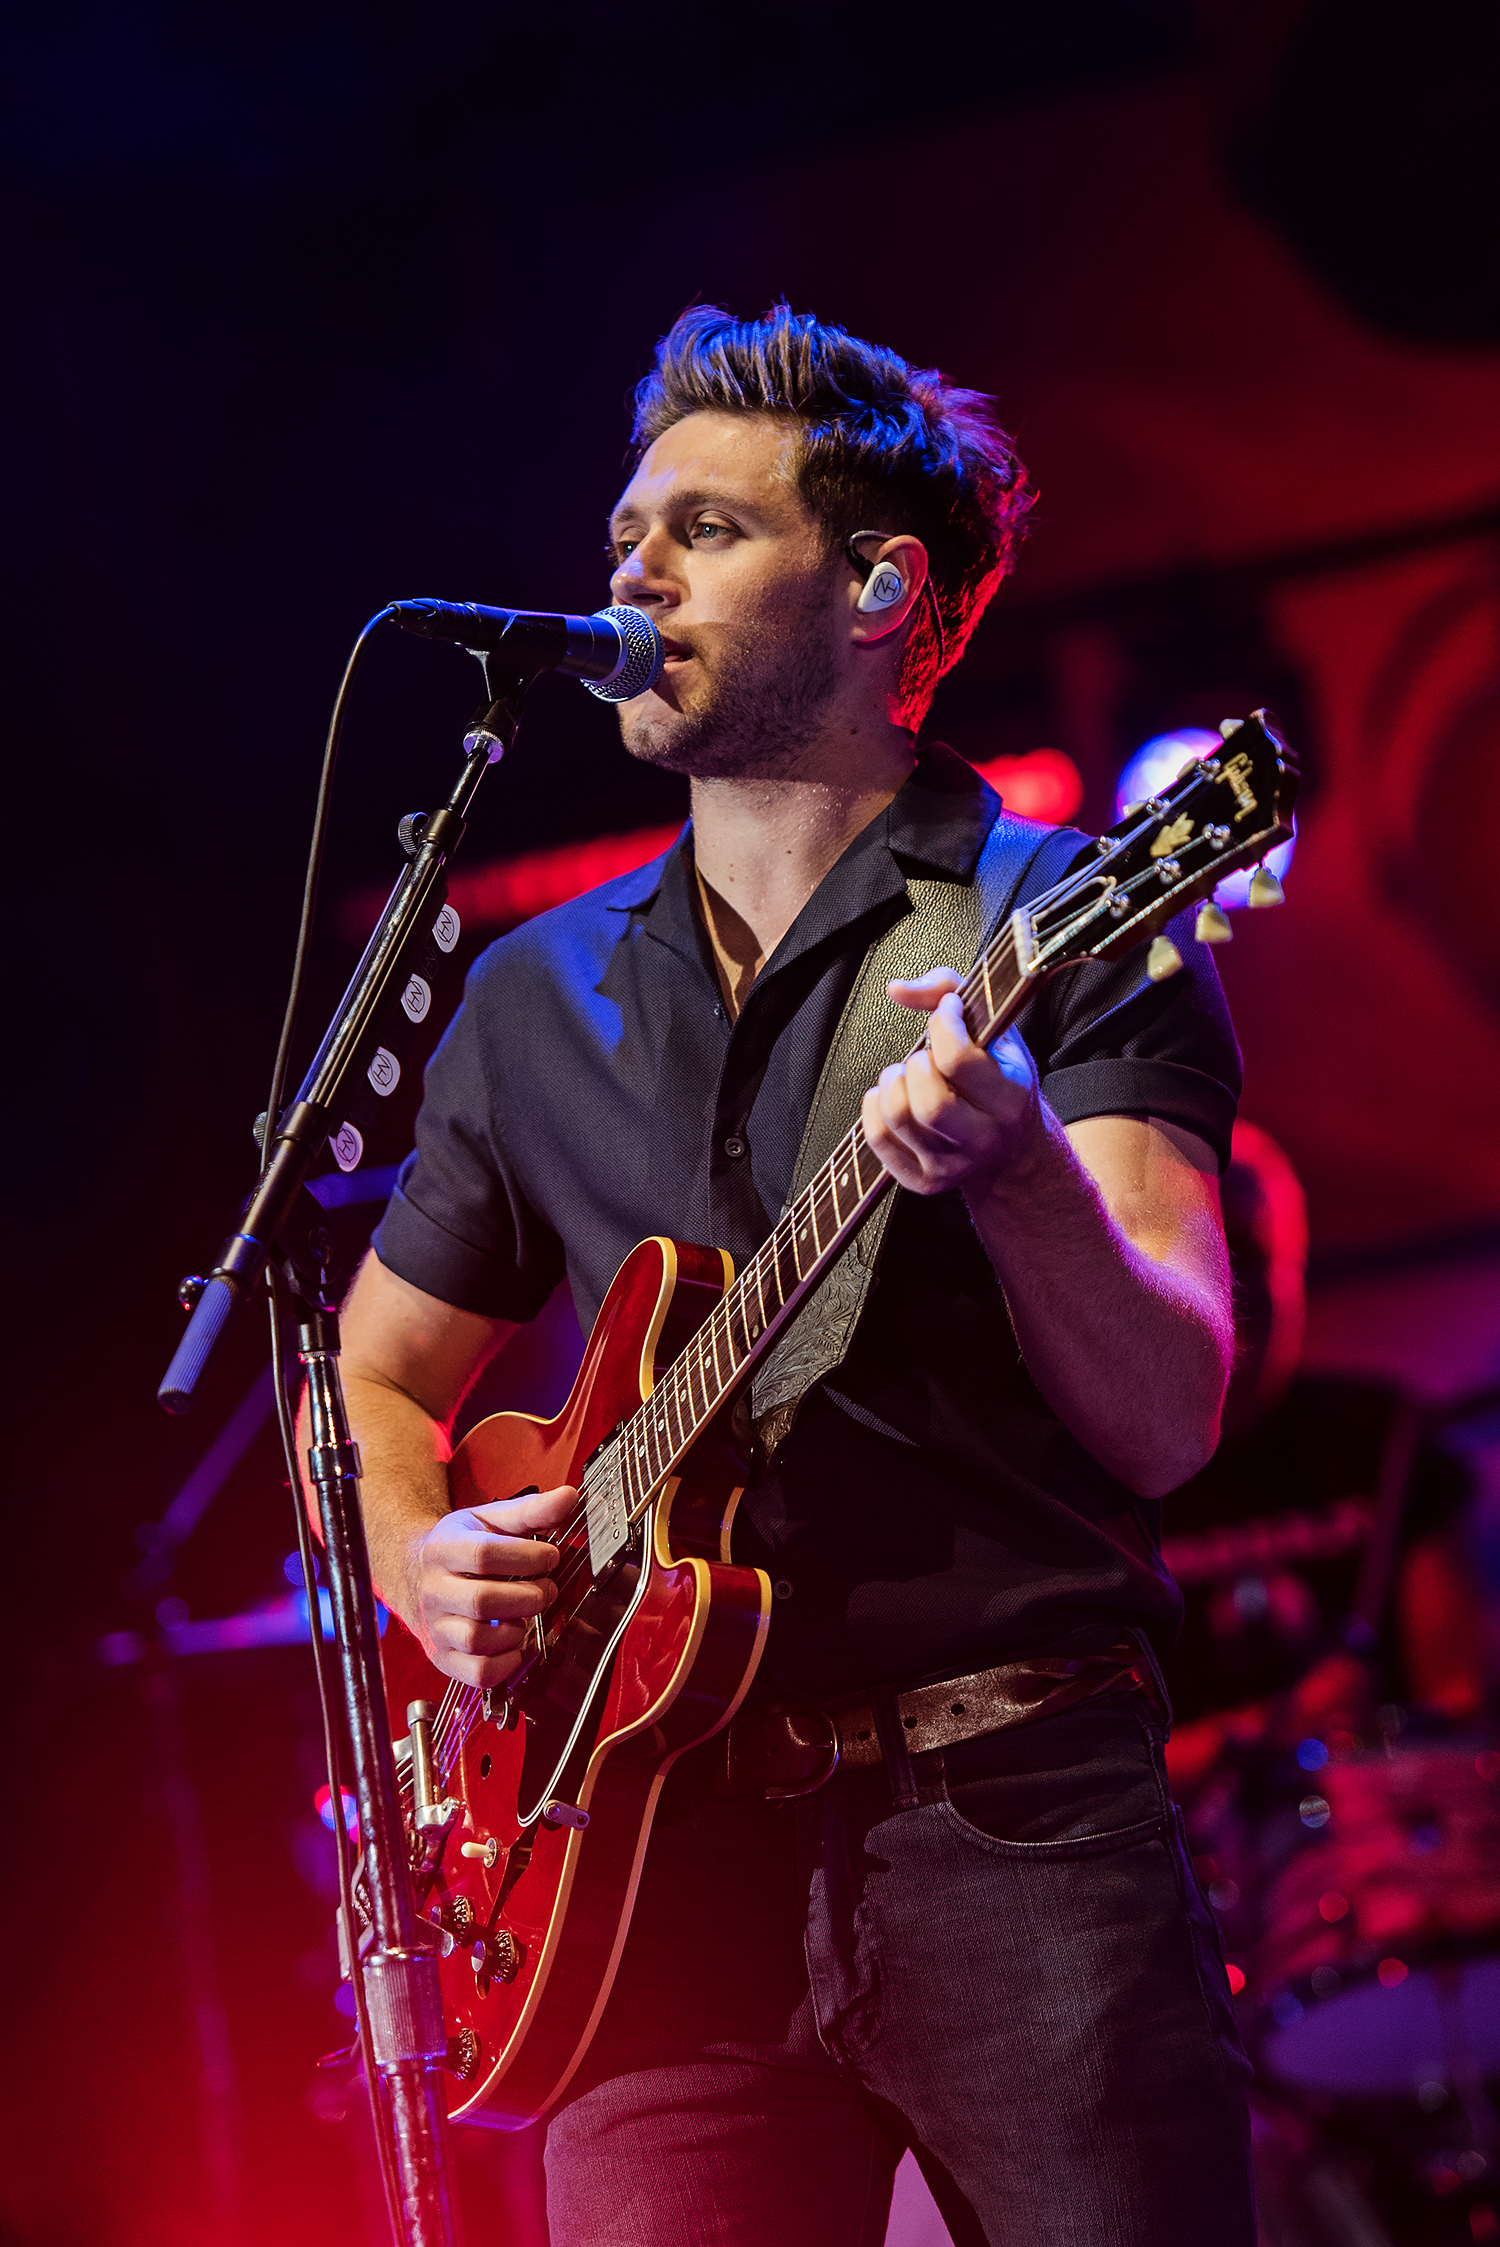 NiallHoranRedRocks8202018 (4 of 32).jpg